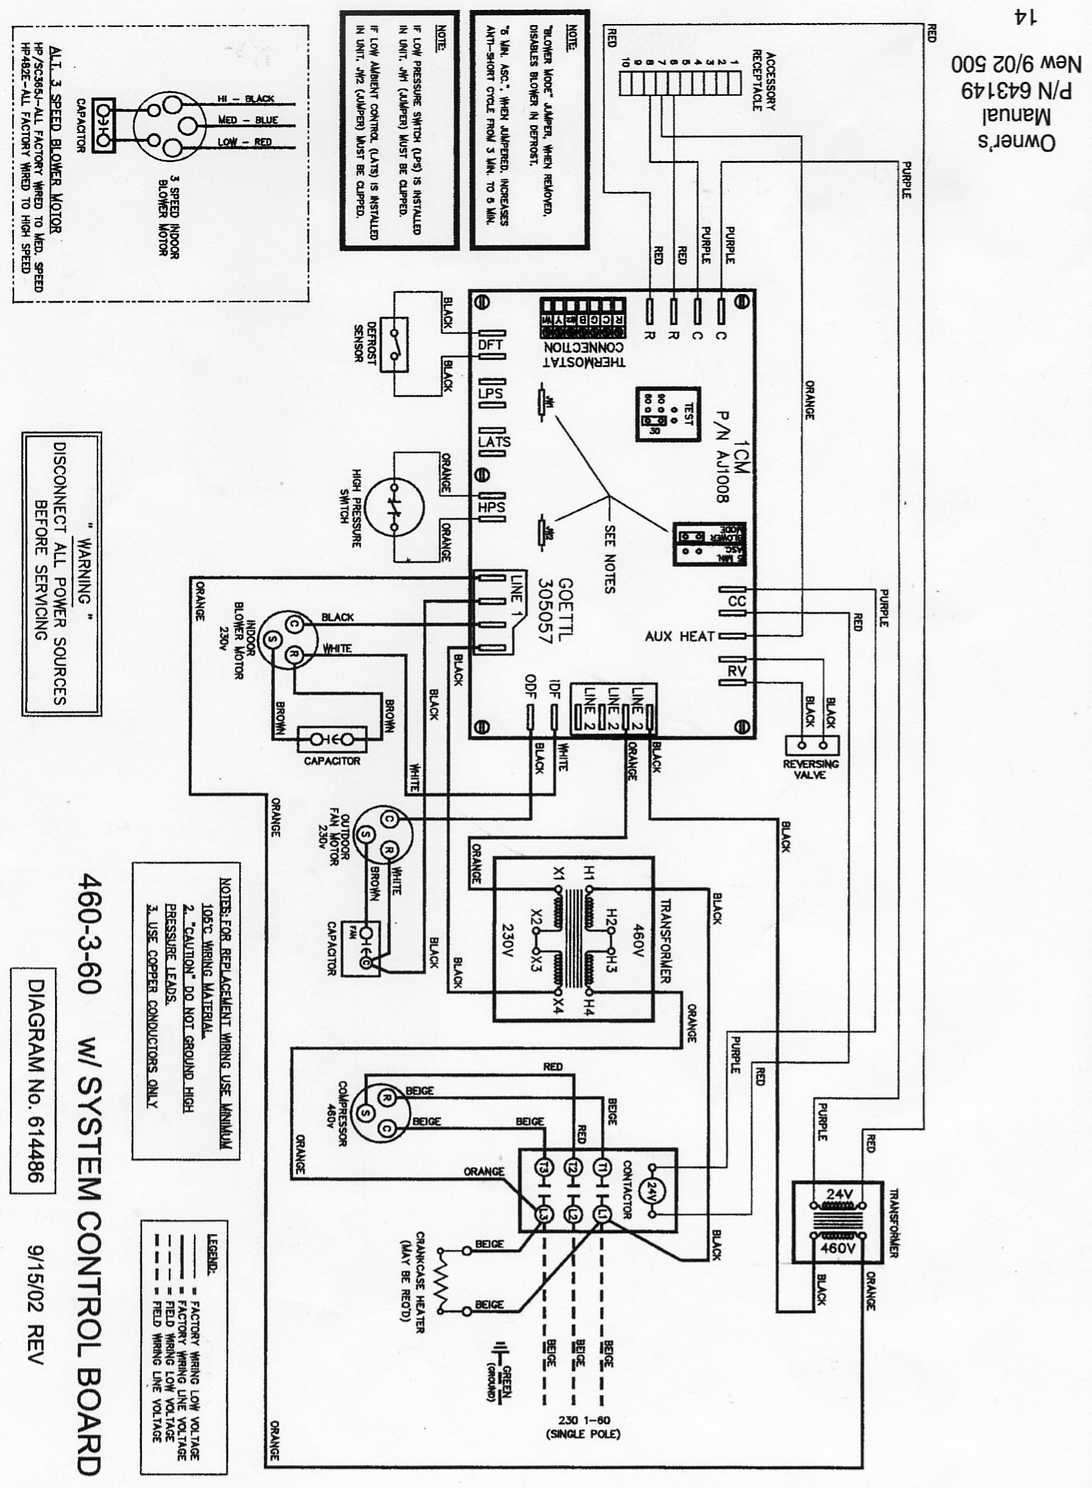 [RW_1944] Wiring Diagram Also Heat Pump Defrost Circuit